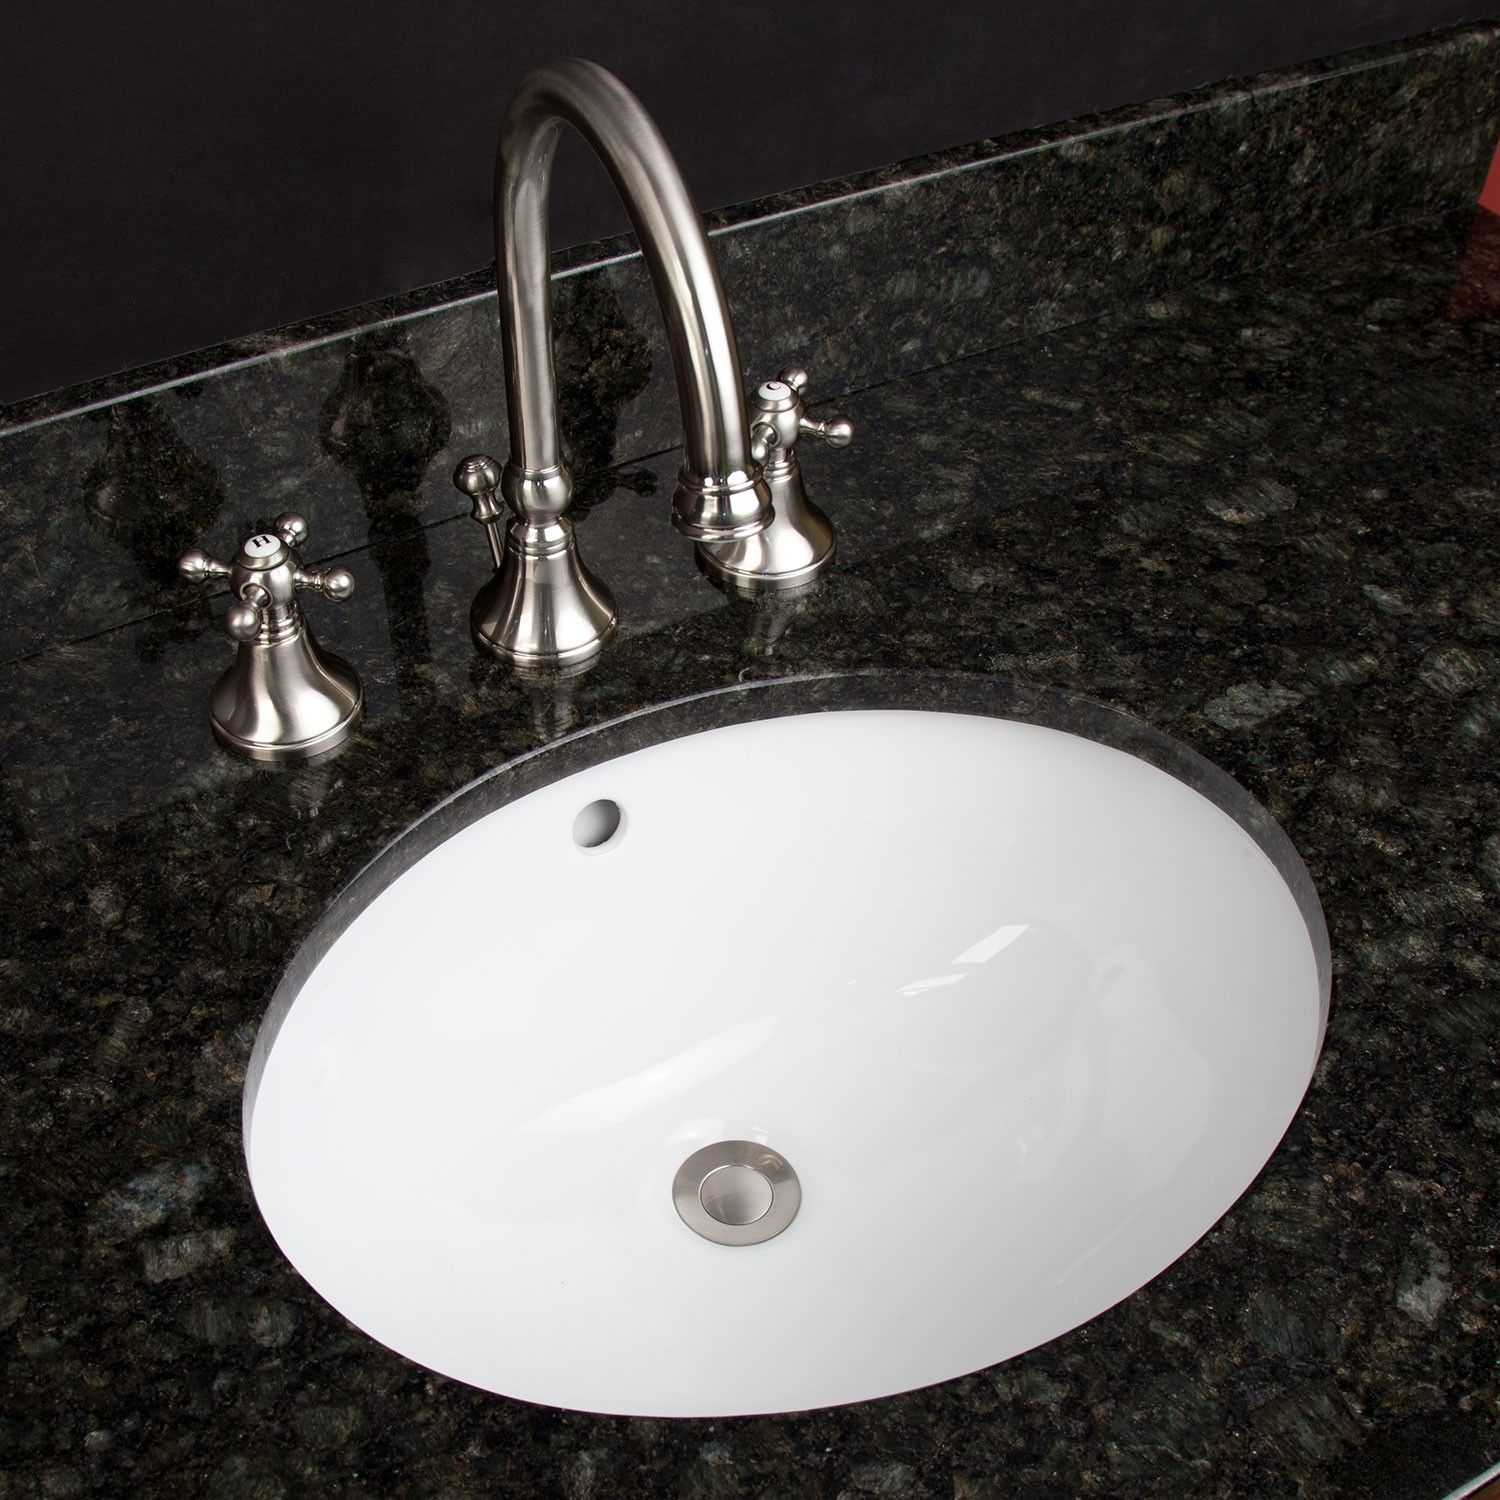 undermount bathroom sink oval. Wonderful Bathroom 18 Throughout Undermount Bathroom Sink Oval D